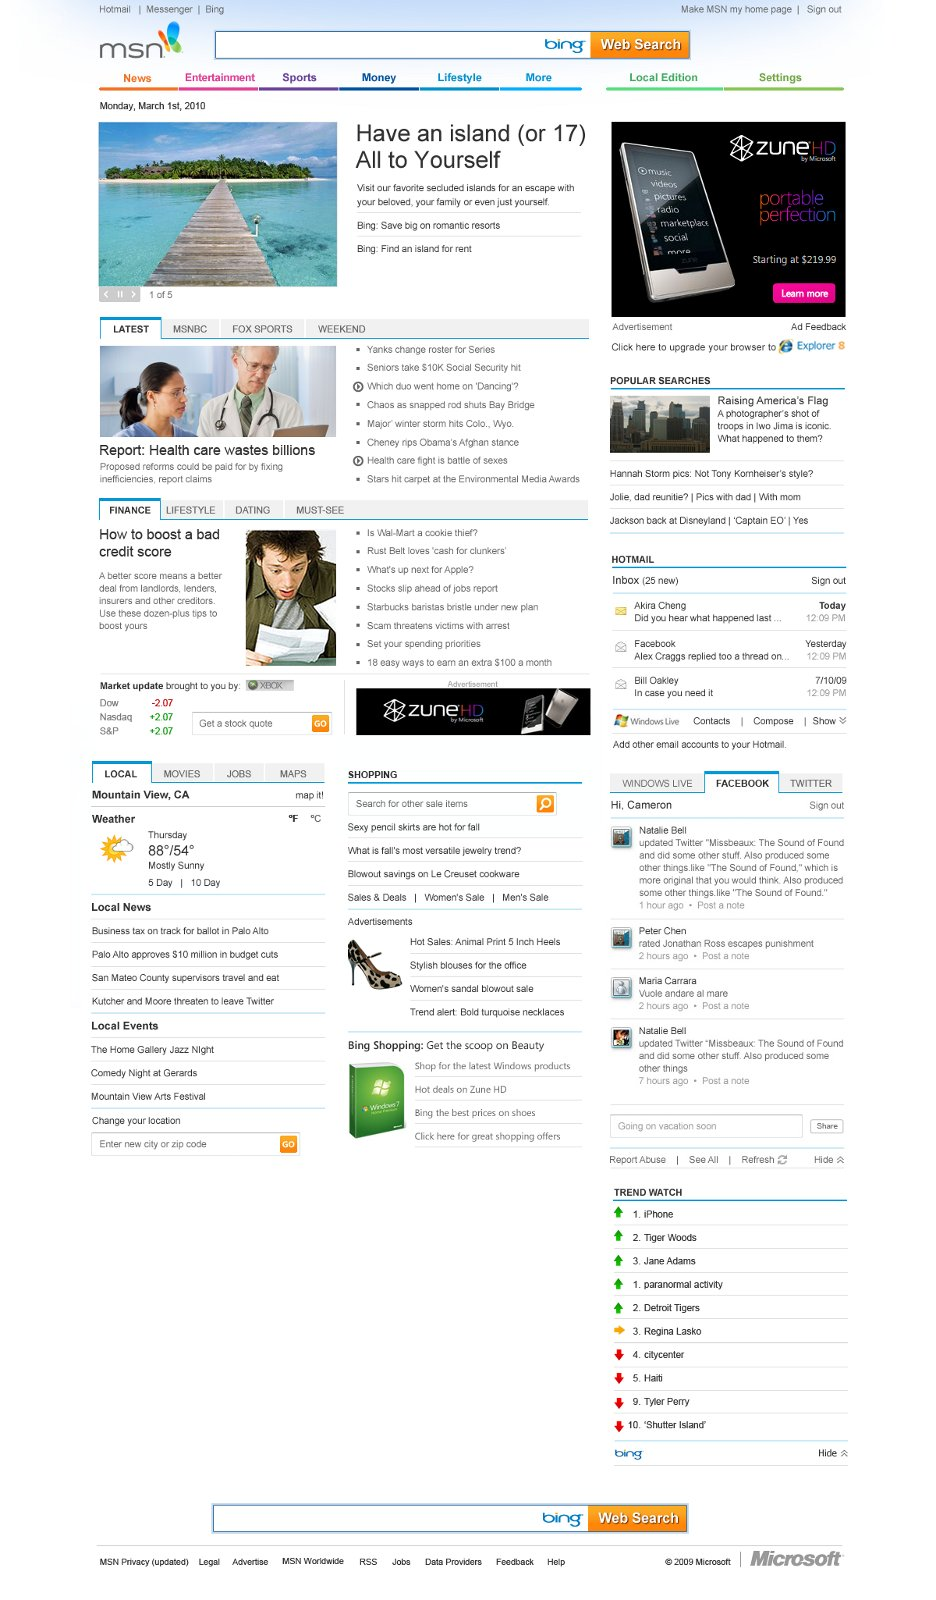 Microsoft begins rolling out redesigned MSN homepage